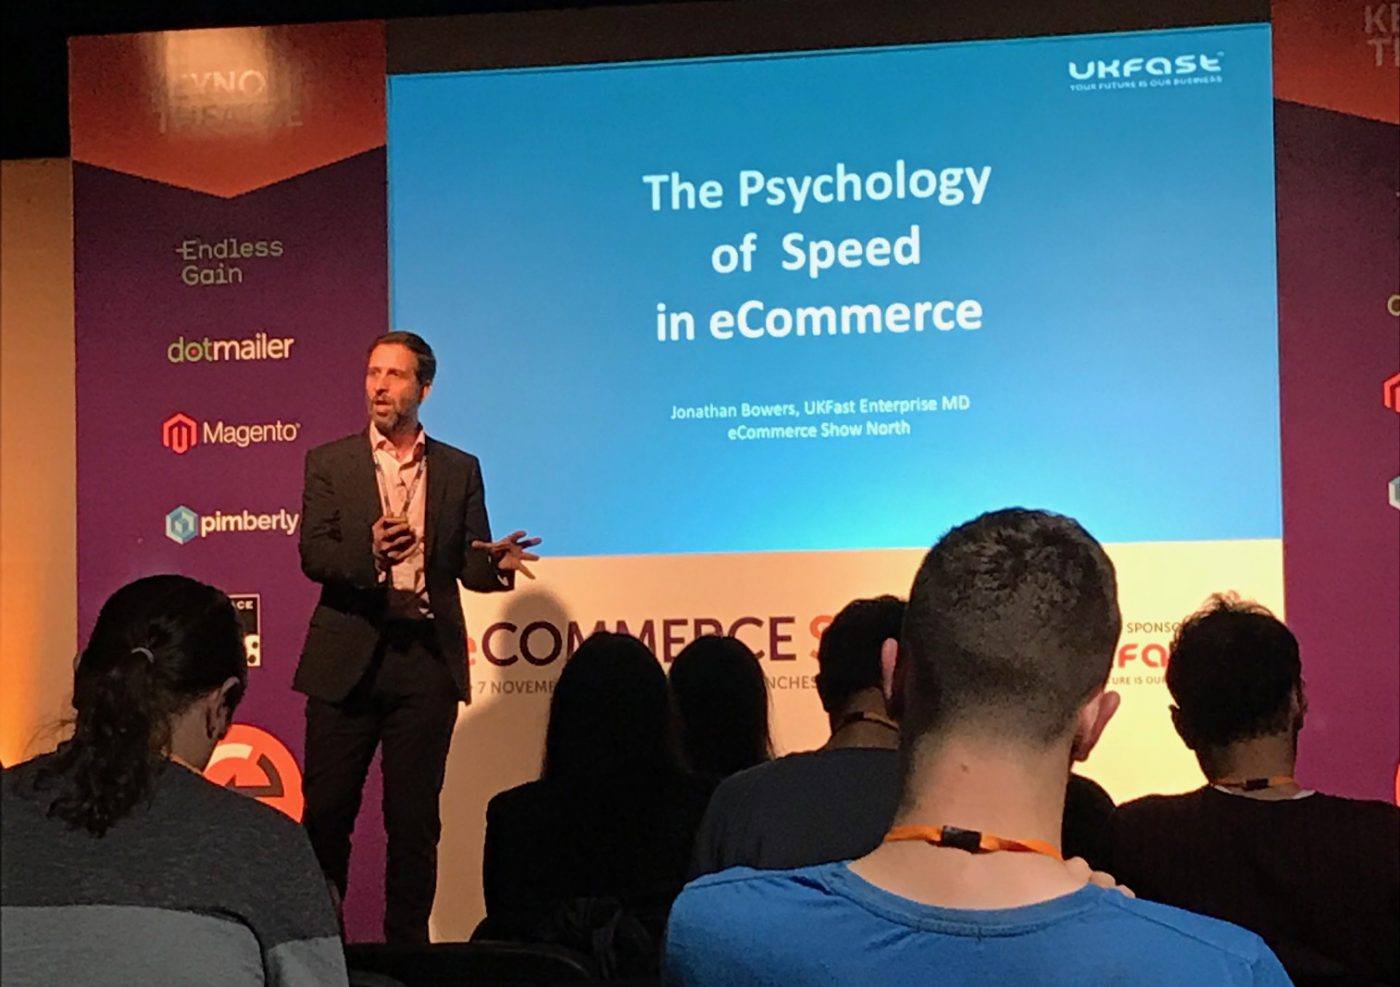 eCommerce Show North | PureNet Notes